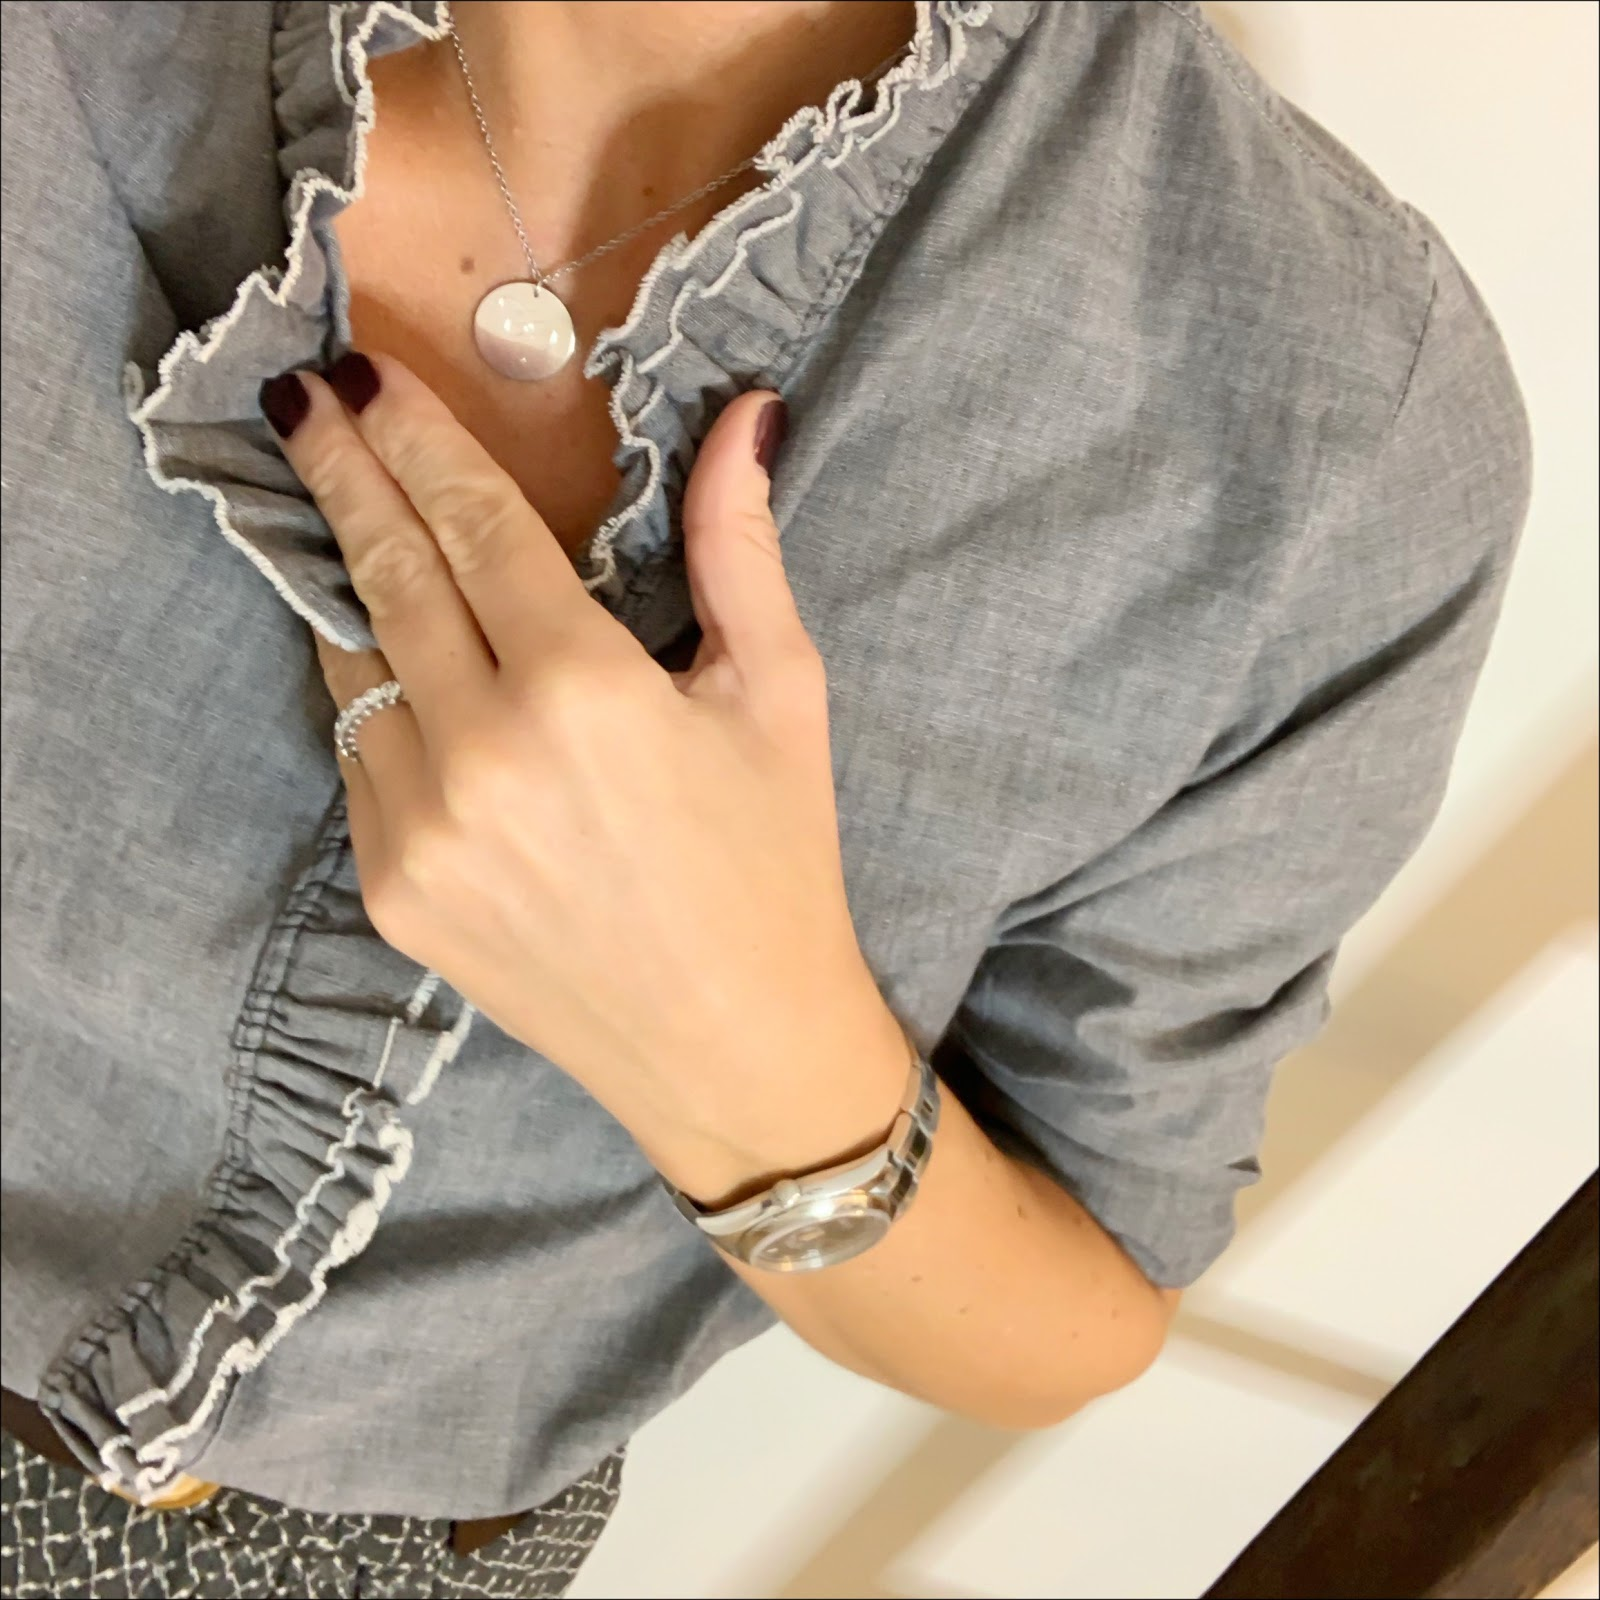 my midlife fashion, messages in metal initial pendant, isabel marant ruffle chambray shirt, isabel marant etoile ruffle maxi skirt, hush thornton ankle boots, and other stories waist buckle belt